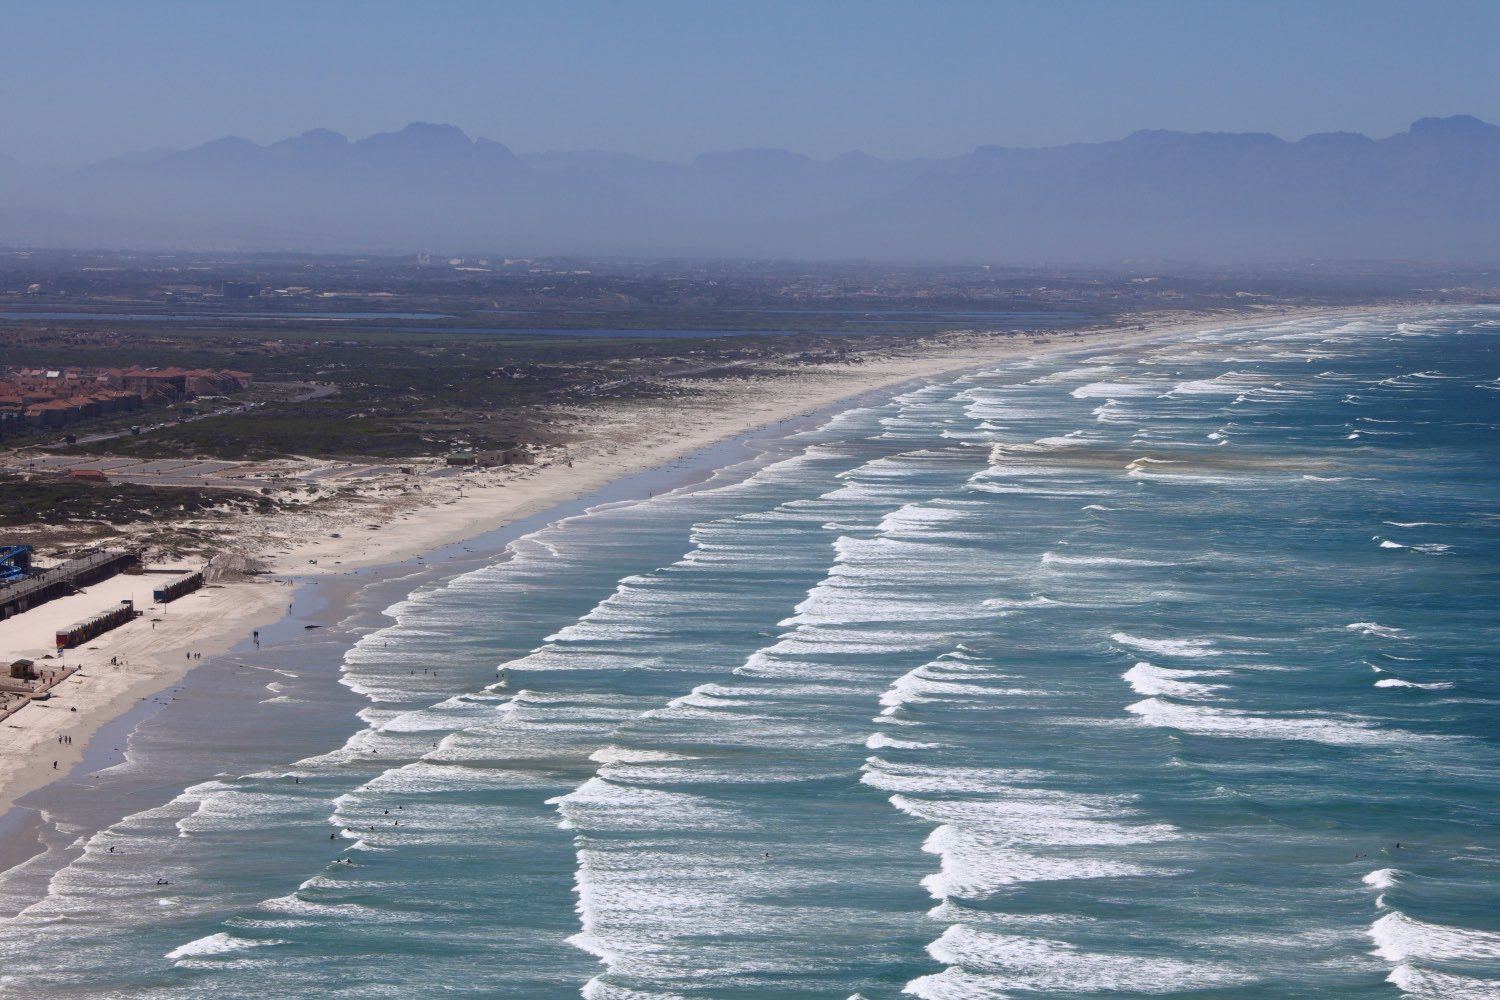 Long wave's bay!    South African beach! 07 March 2012. 1/250 s, f/14, +1/3 EV, ISO 100, 120 mm, EOS 5D MarkII + EF 28-300 L